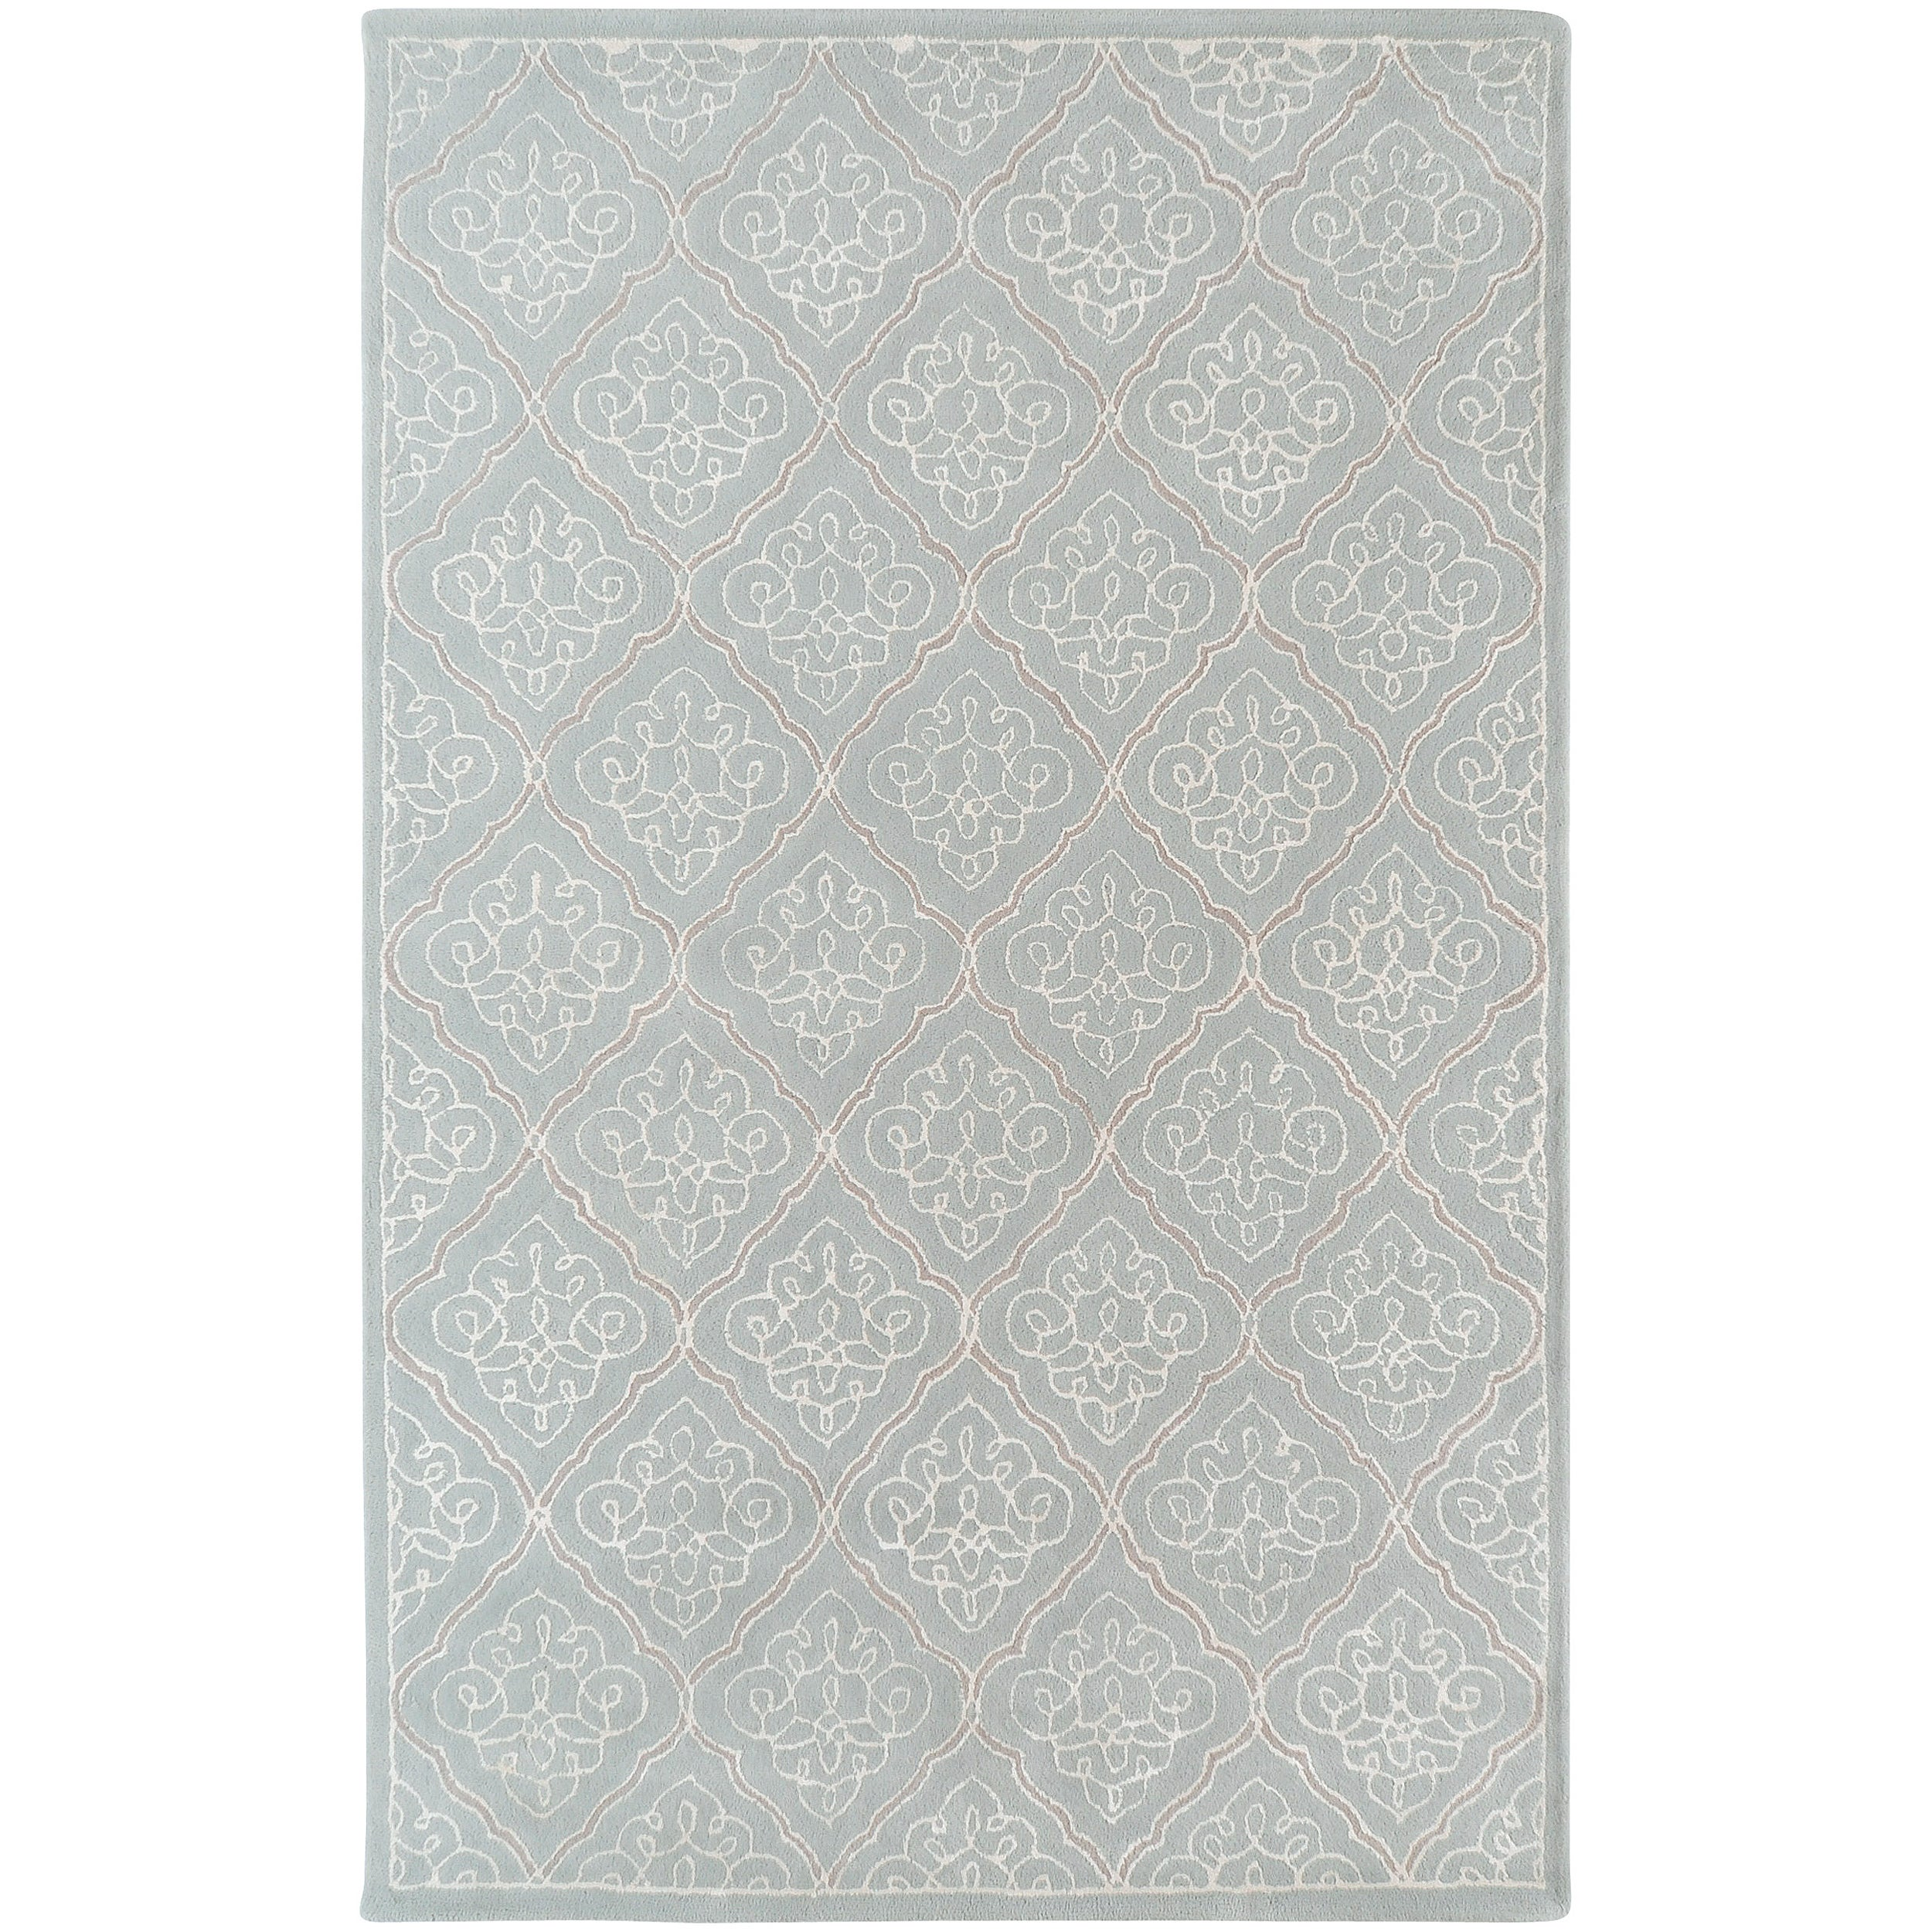 Hand-tufted Quimper Contemporary Geometric Wool Area Rug - 8' x 11'